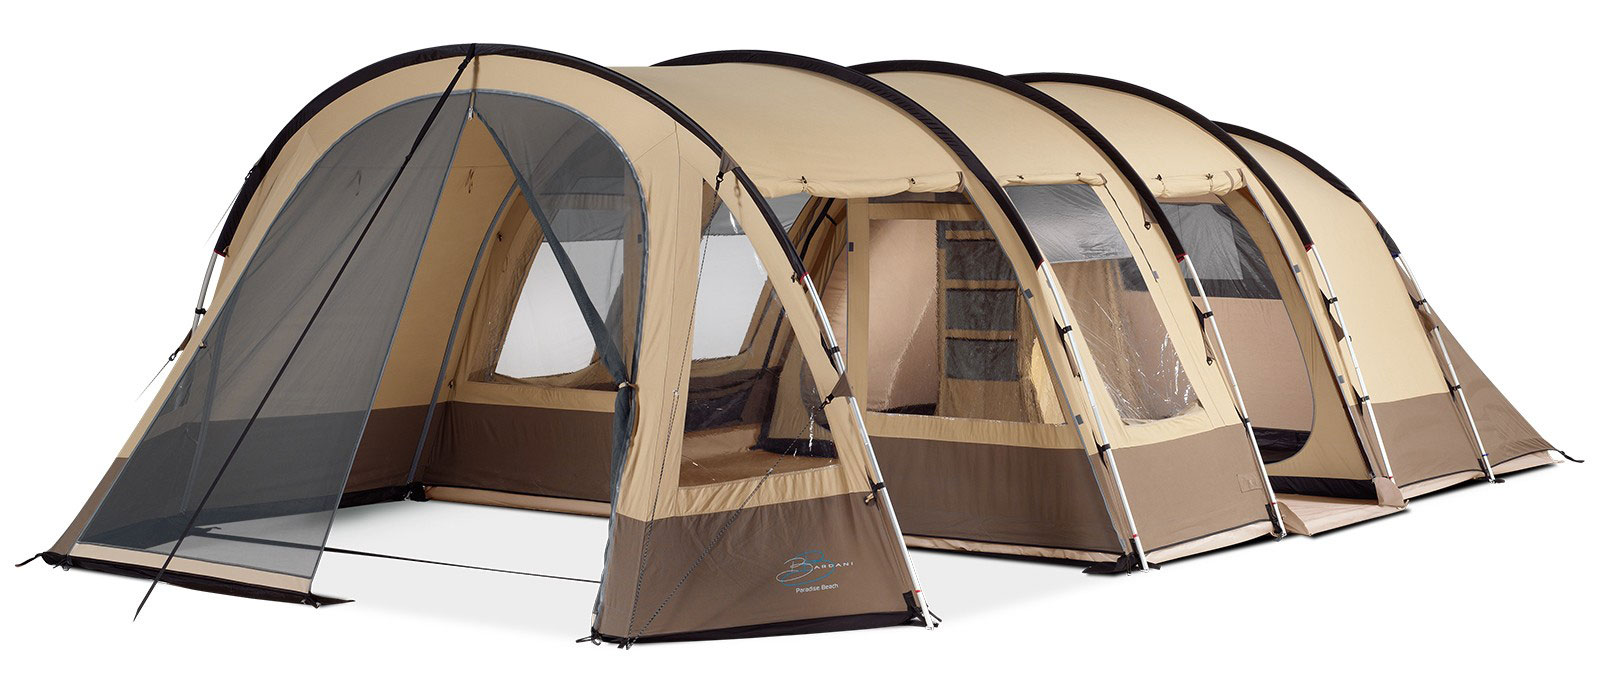 Tente camping intersport for Toile de tente 4 chambres